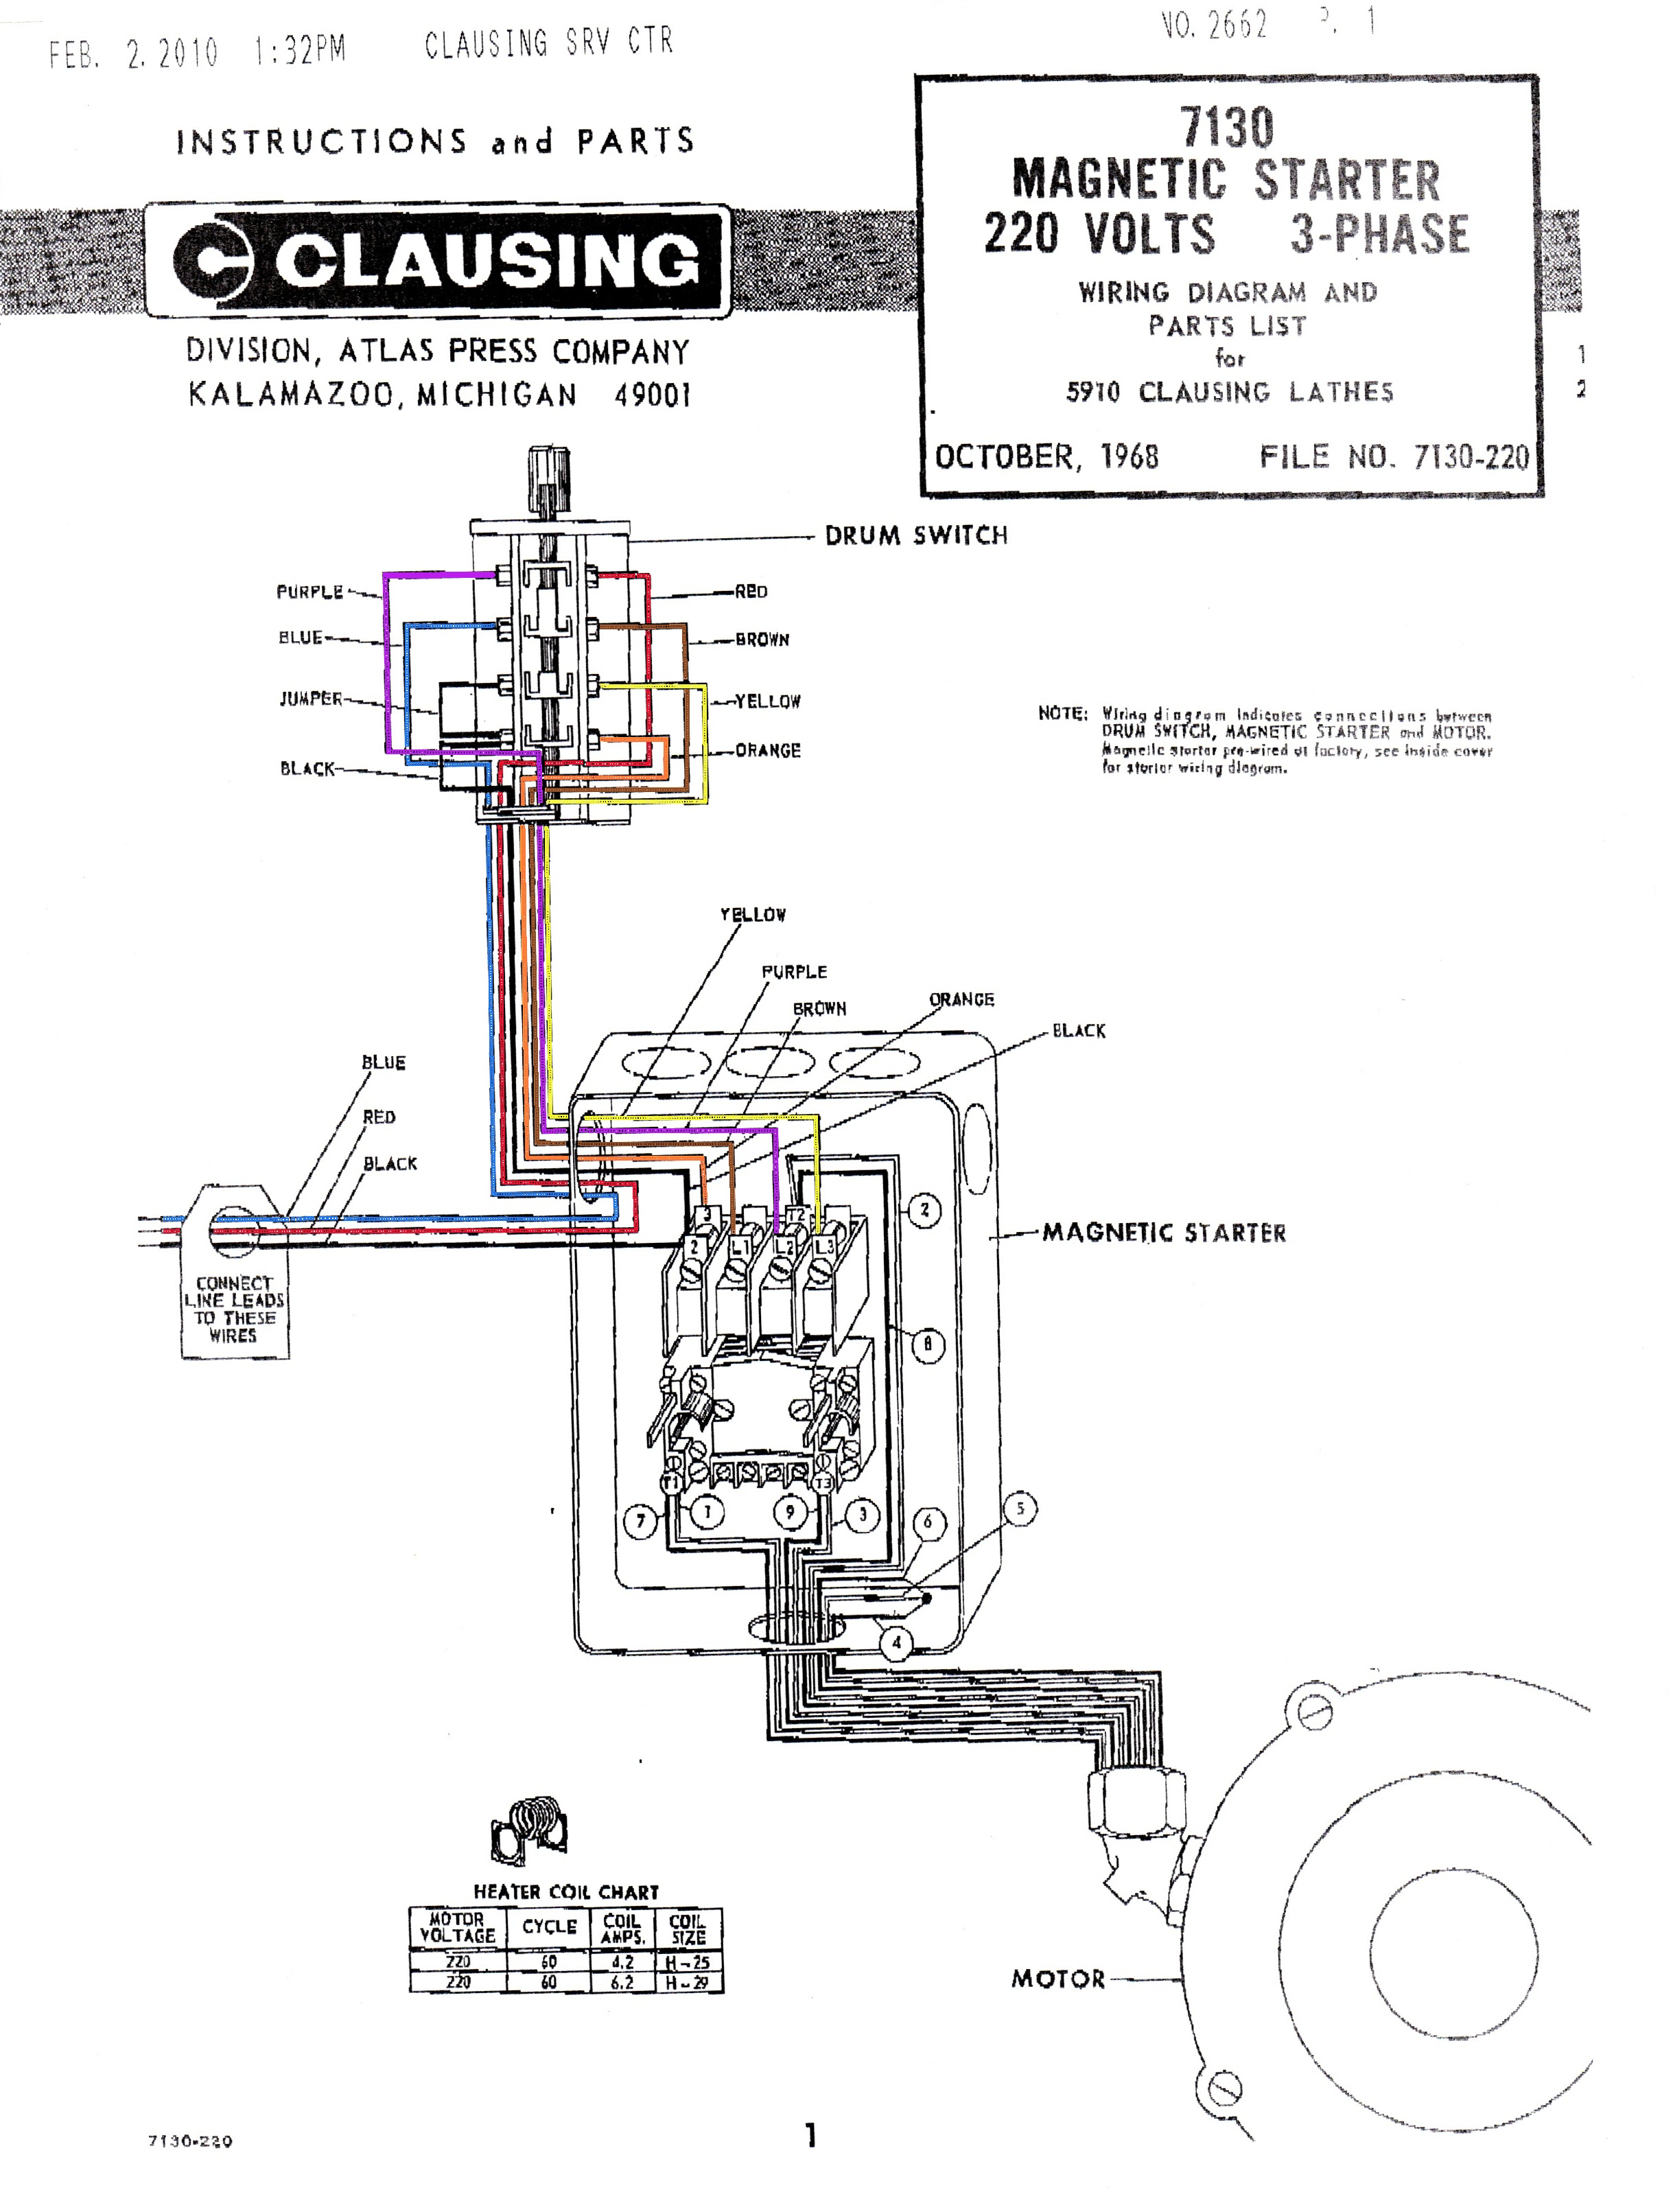 7130 Magnetic Starter Wiring Diagram Color starter wiring diagrams mag wiring diagrams instruction starter wiring diagram at alyssarenee.co